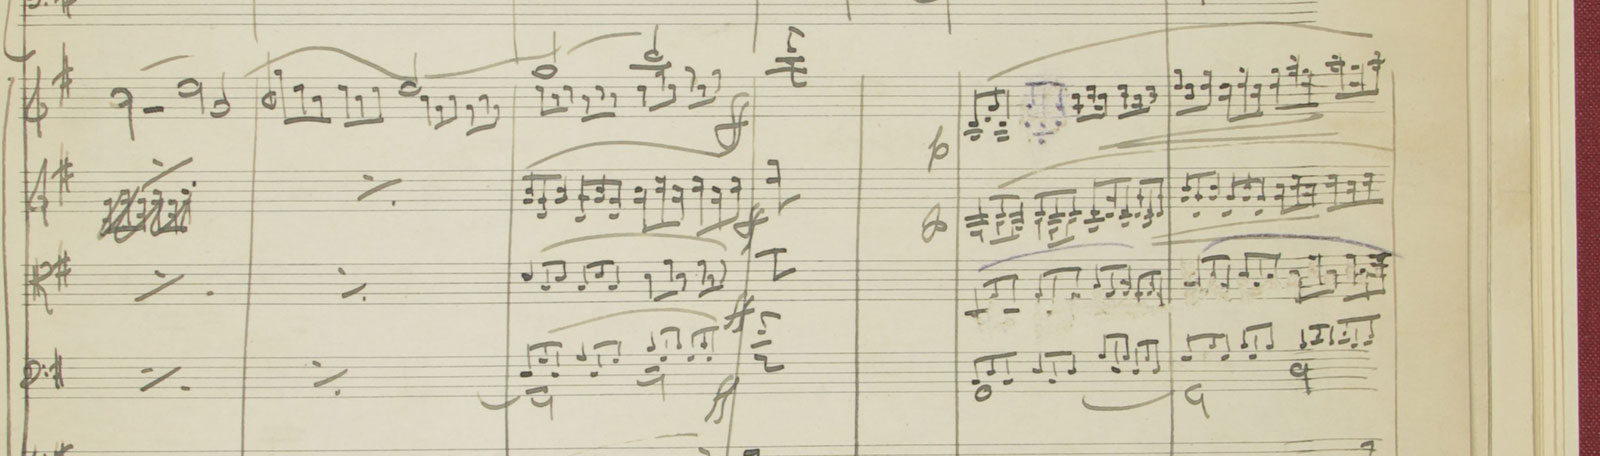 Vaughan Williams and The English Hymnal - The British Library